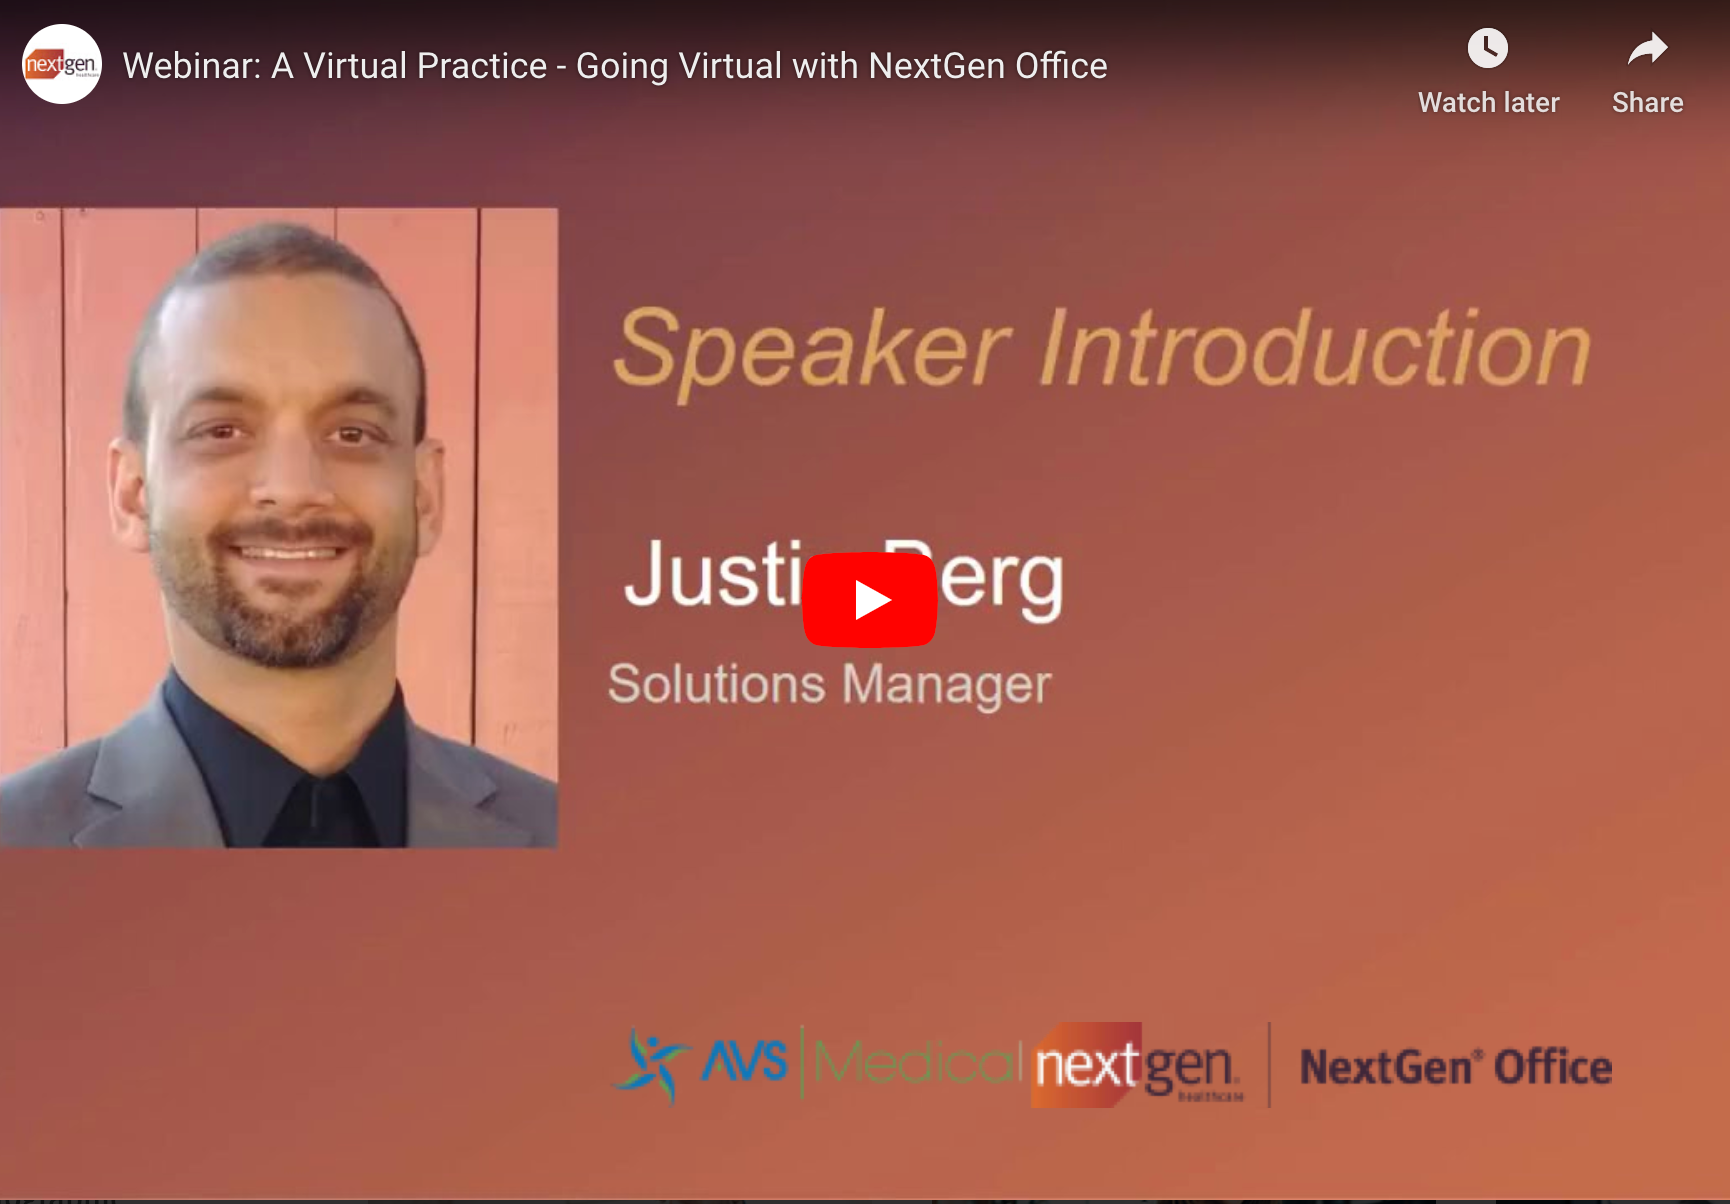 NextGen Office Cloud based EMR Product Manager takes you through the tools to power your virtual office